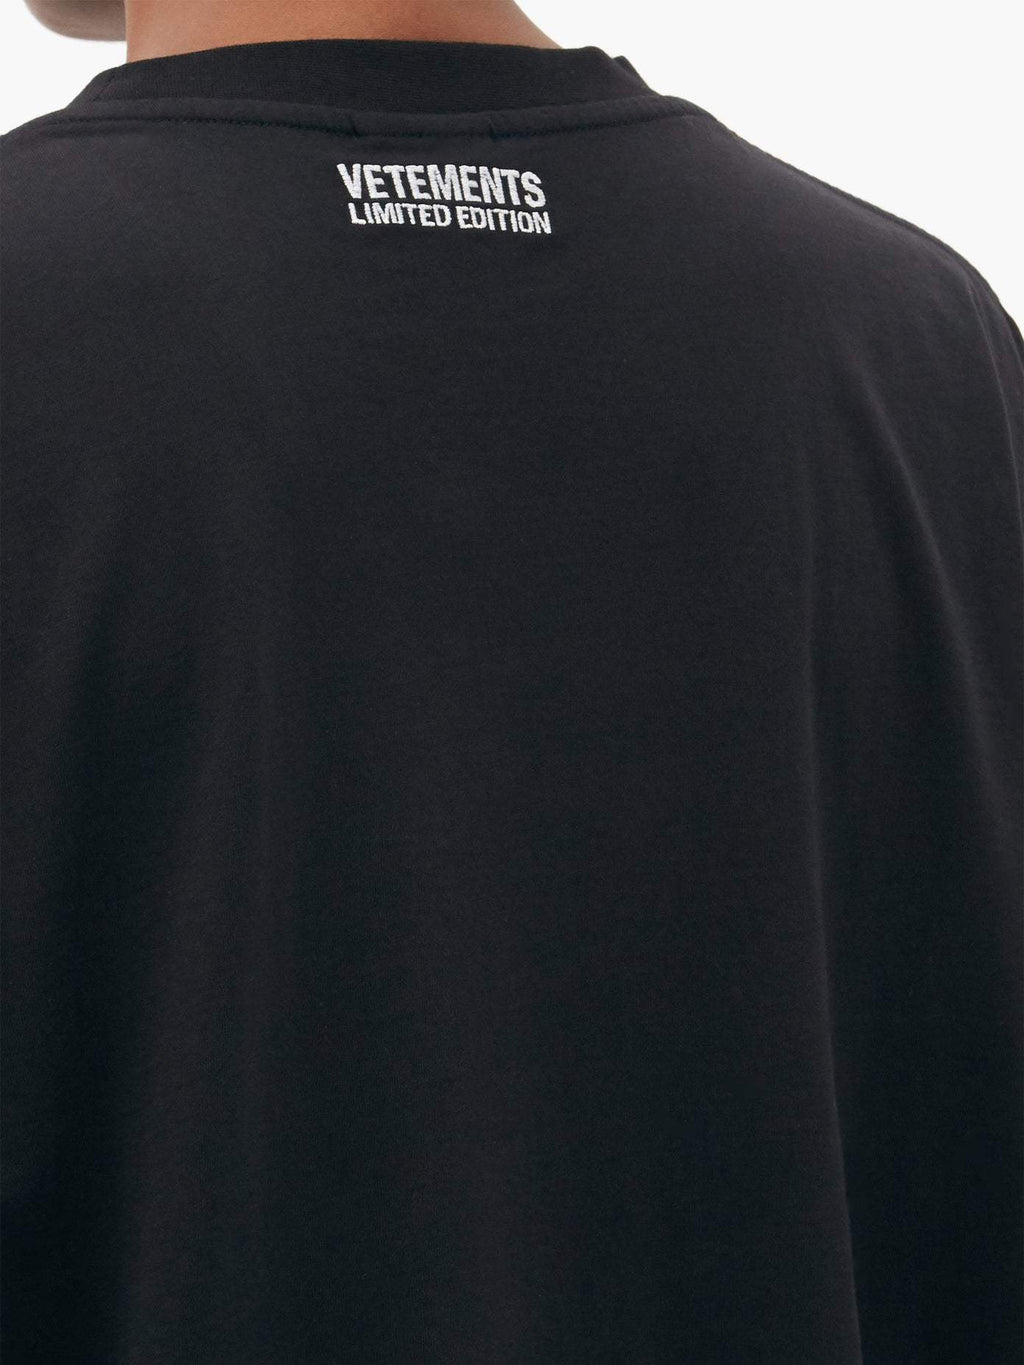 VETEMENTS Antwerp Logo T-shirt Black - Maison De Fashion